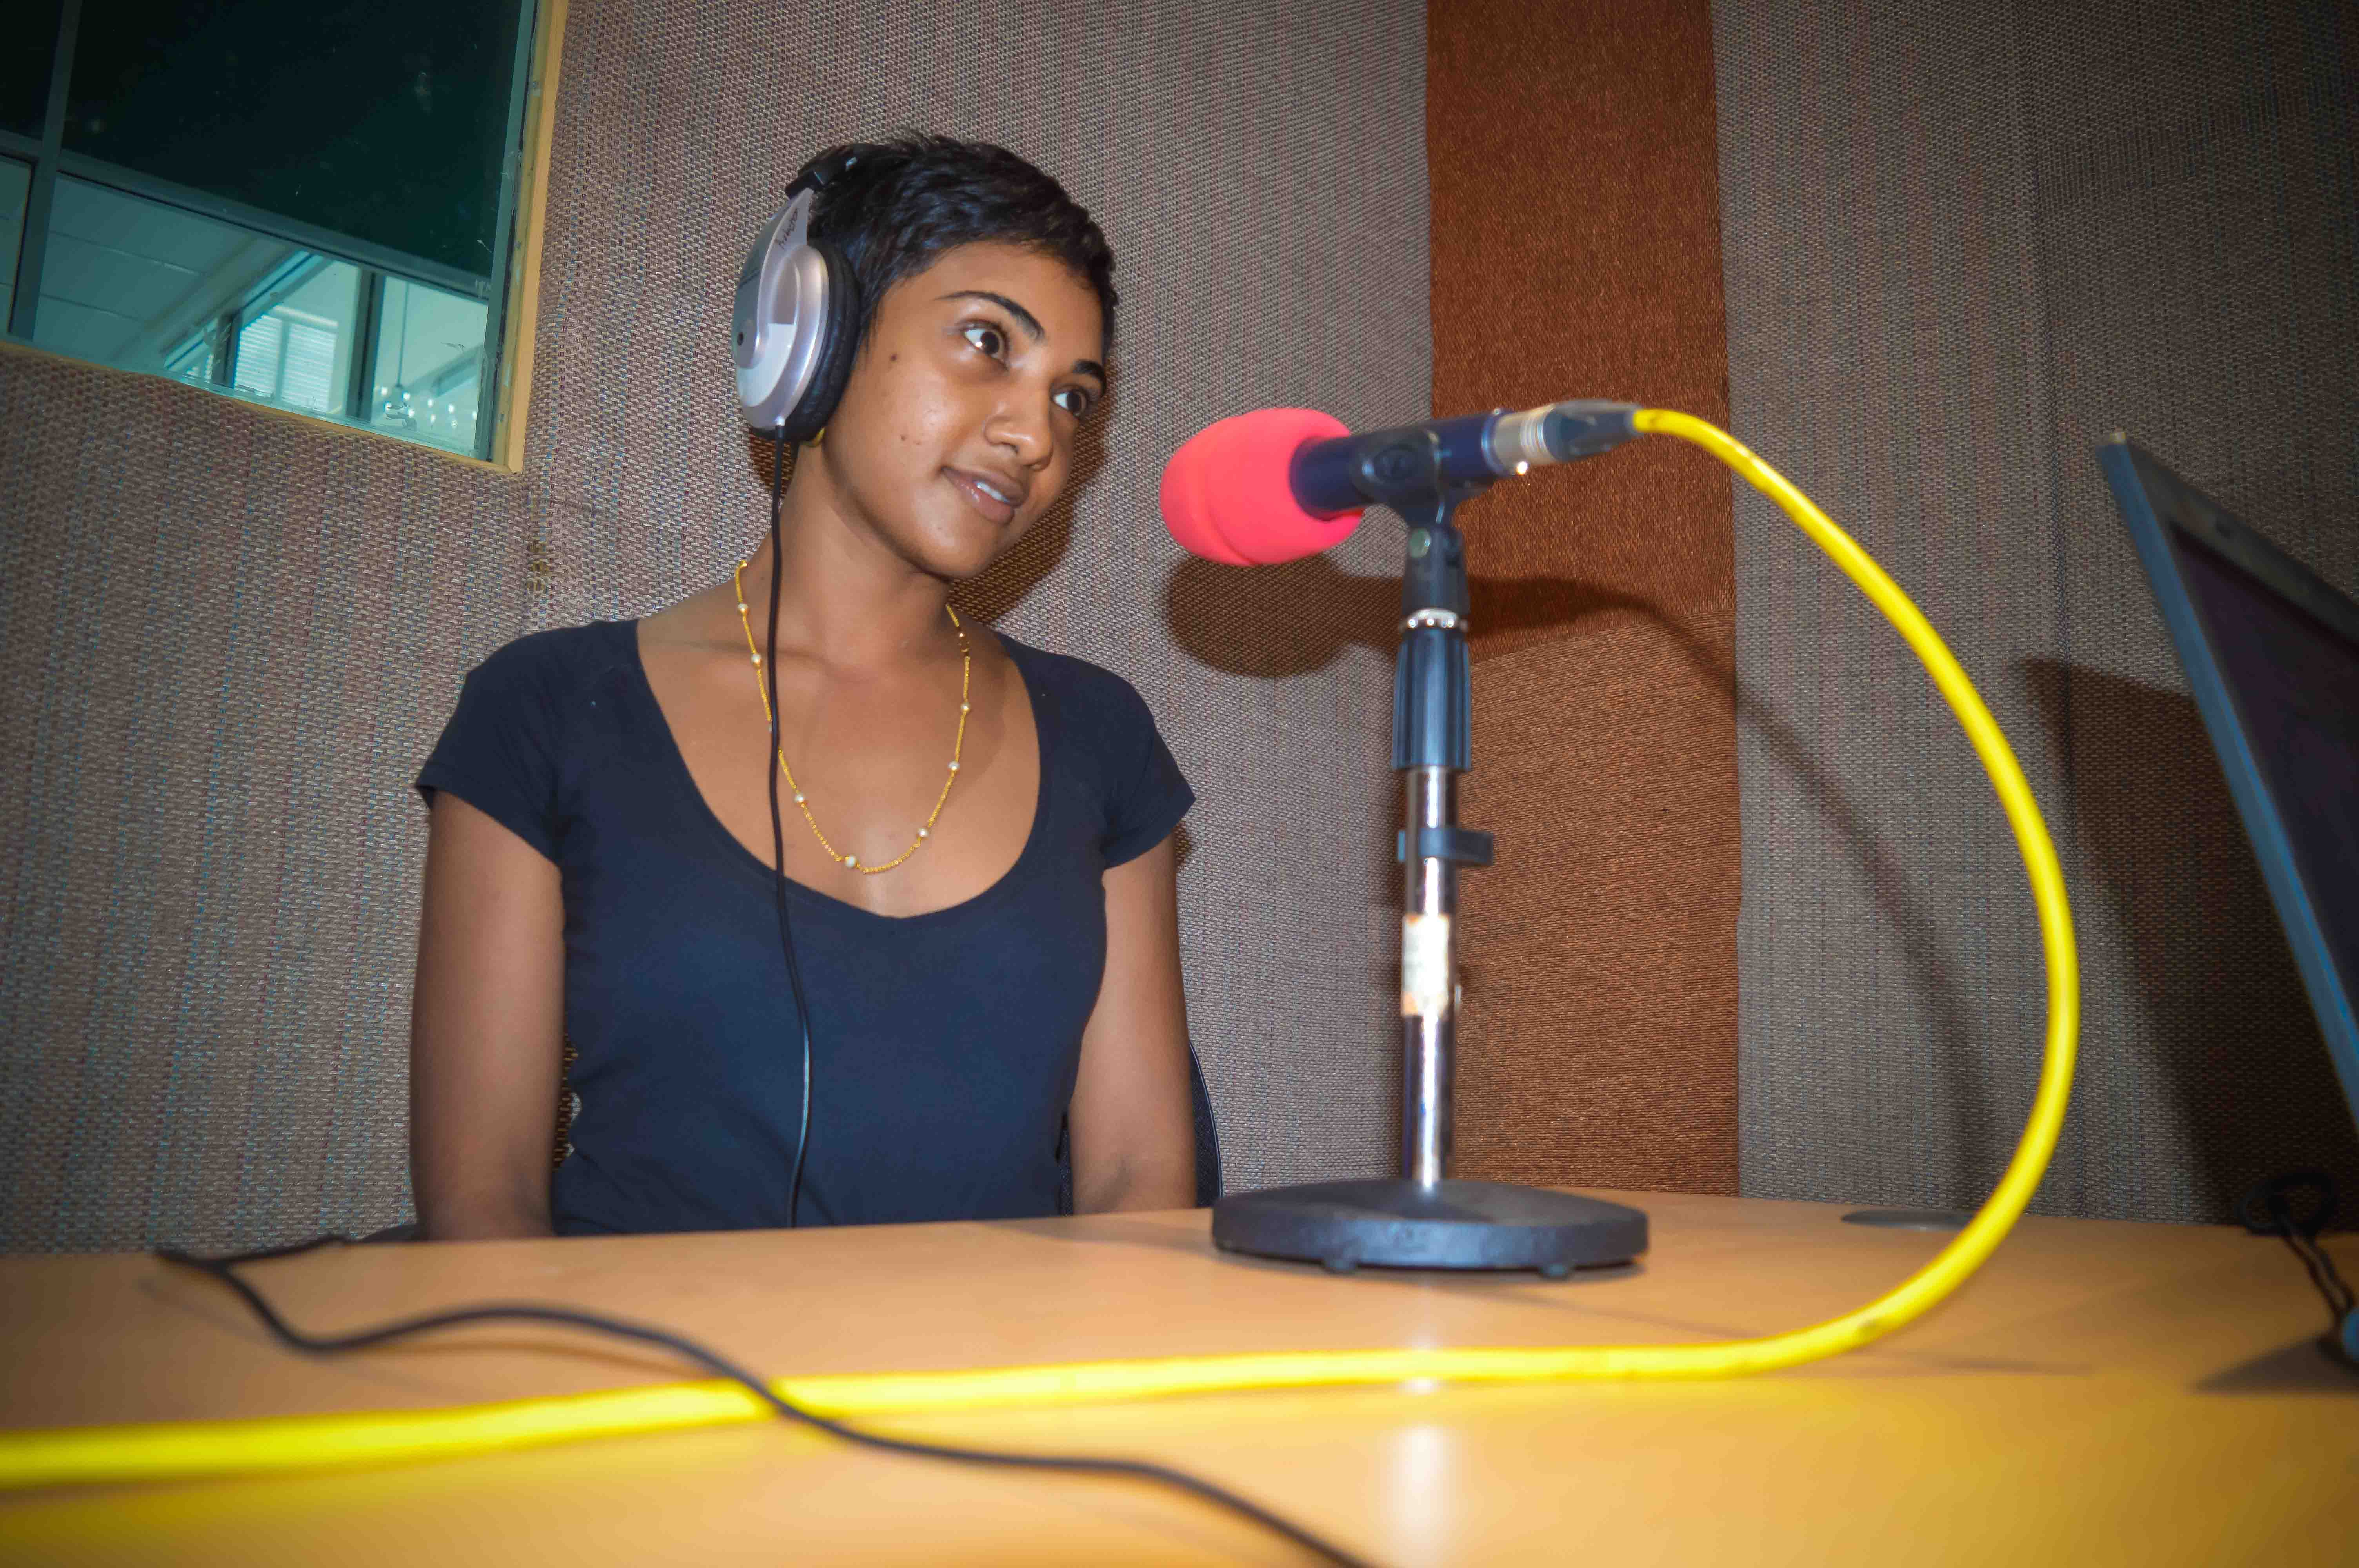 Let's talk sustainable lifestyles, overconsumption and waste with Savera Weerasinghe